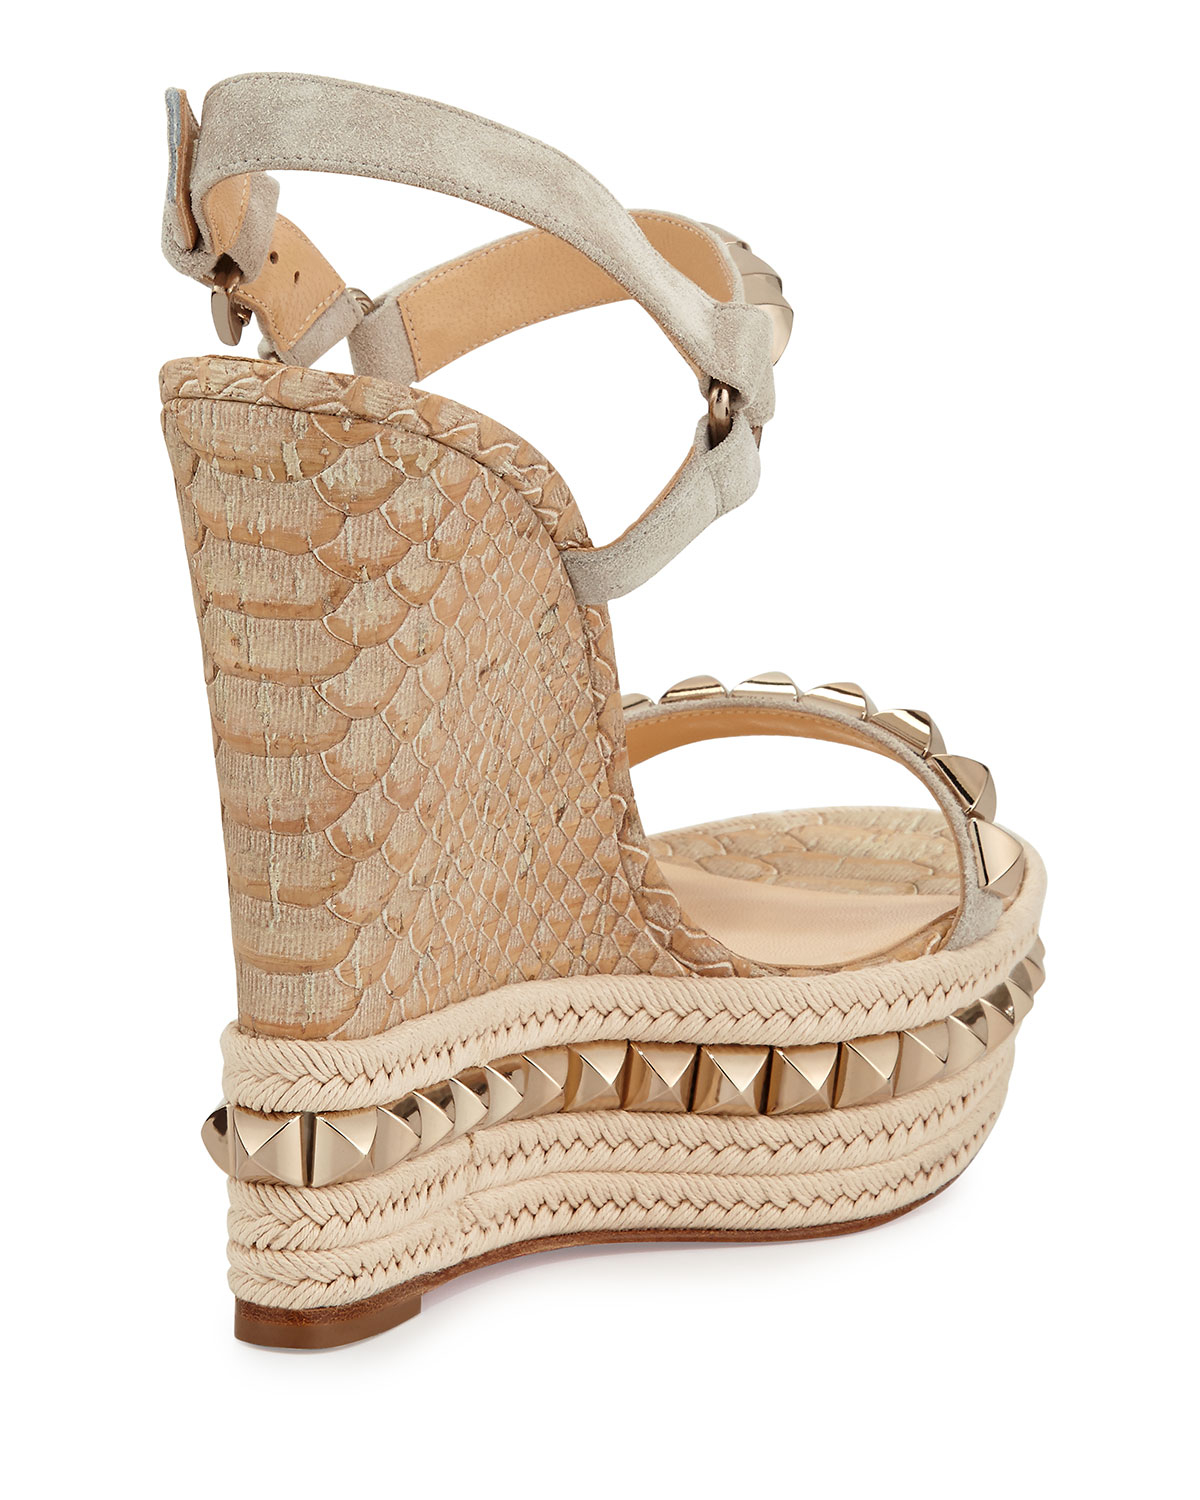 Christian louboutin Cataclou Python-Embossed Wedge Sandals in Gold ...